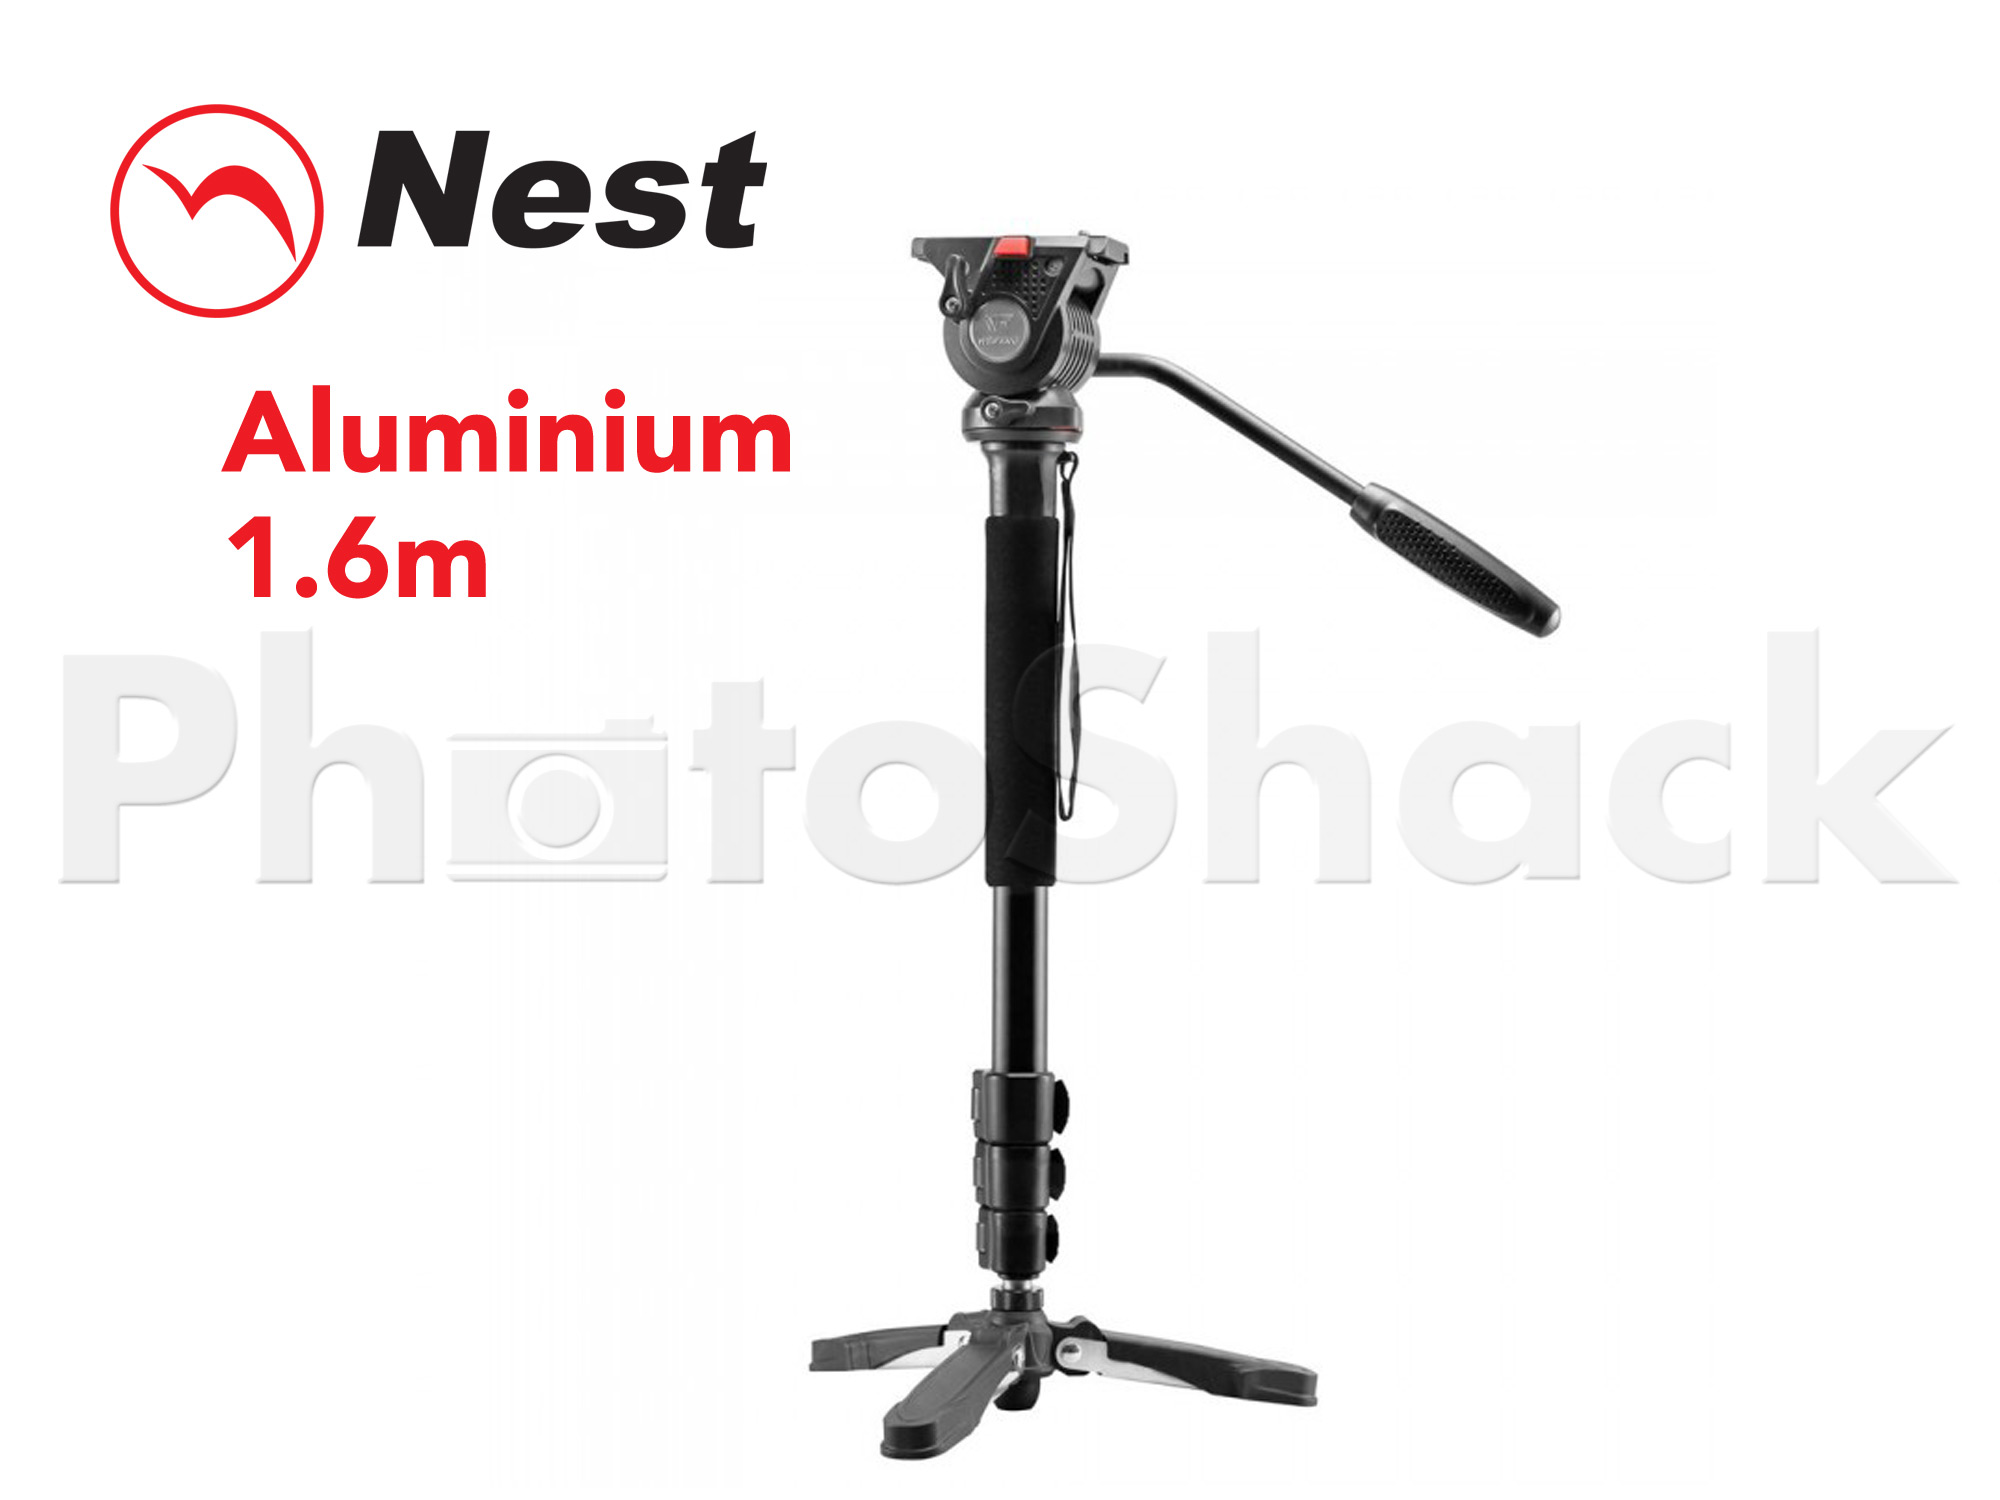 Nest Video Monopod - 1.6m Aluminium 5kg pay load (Arca)